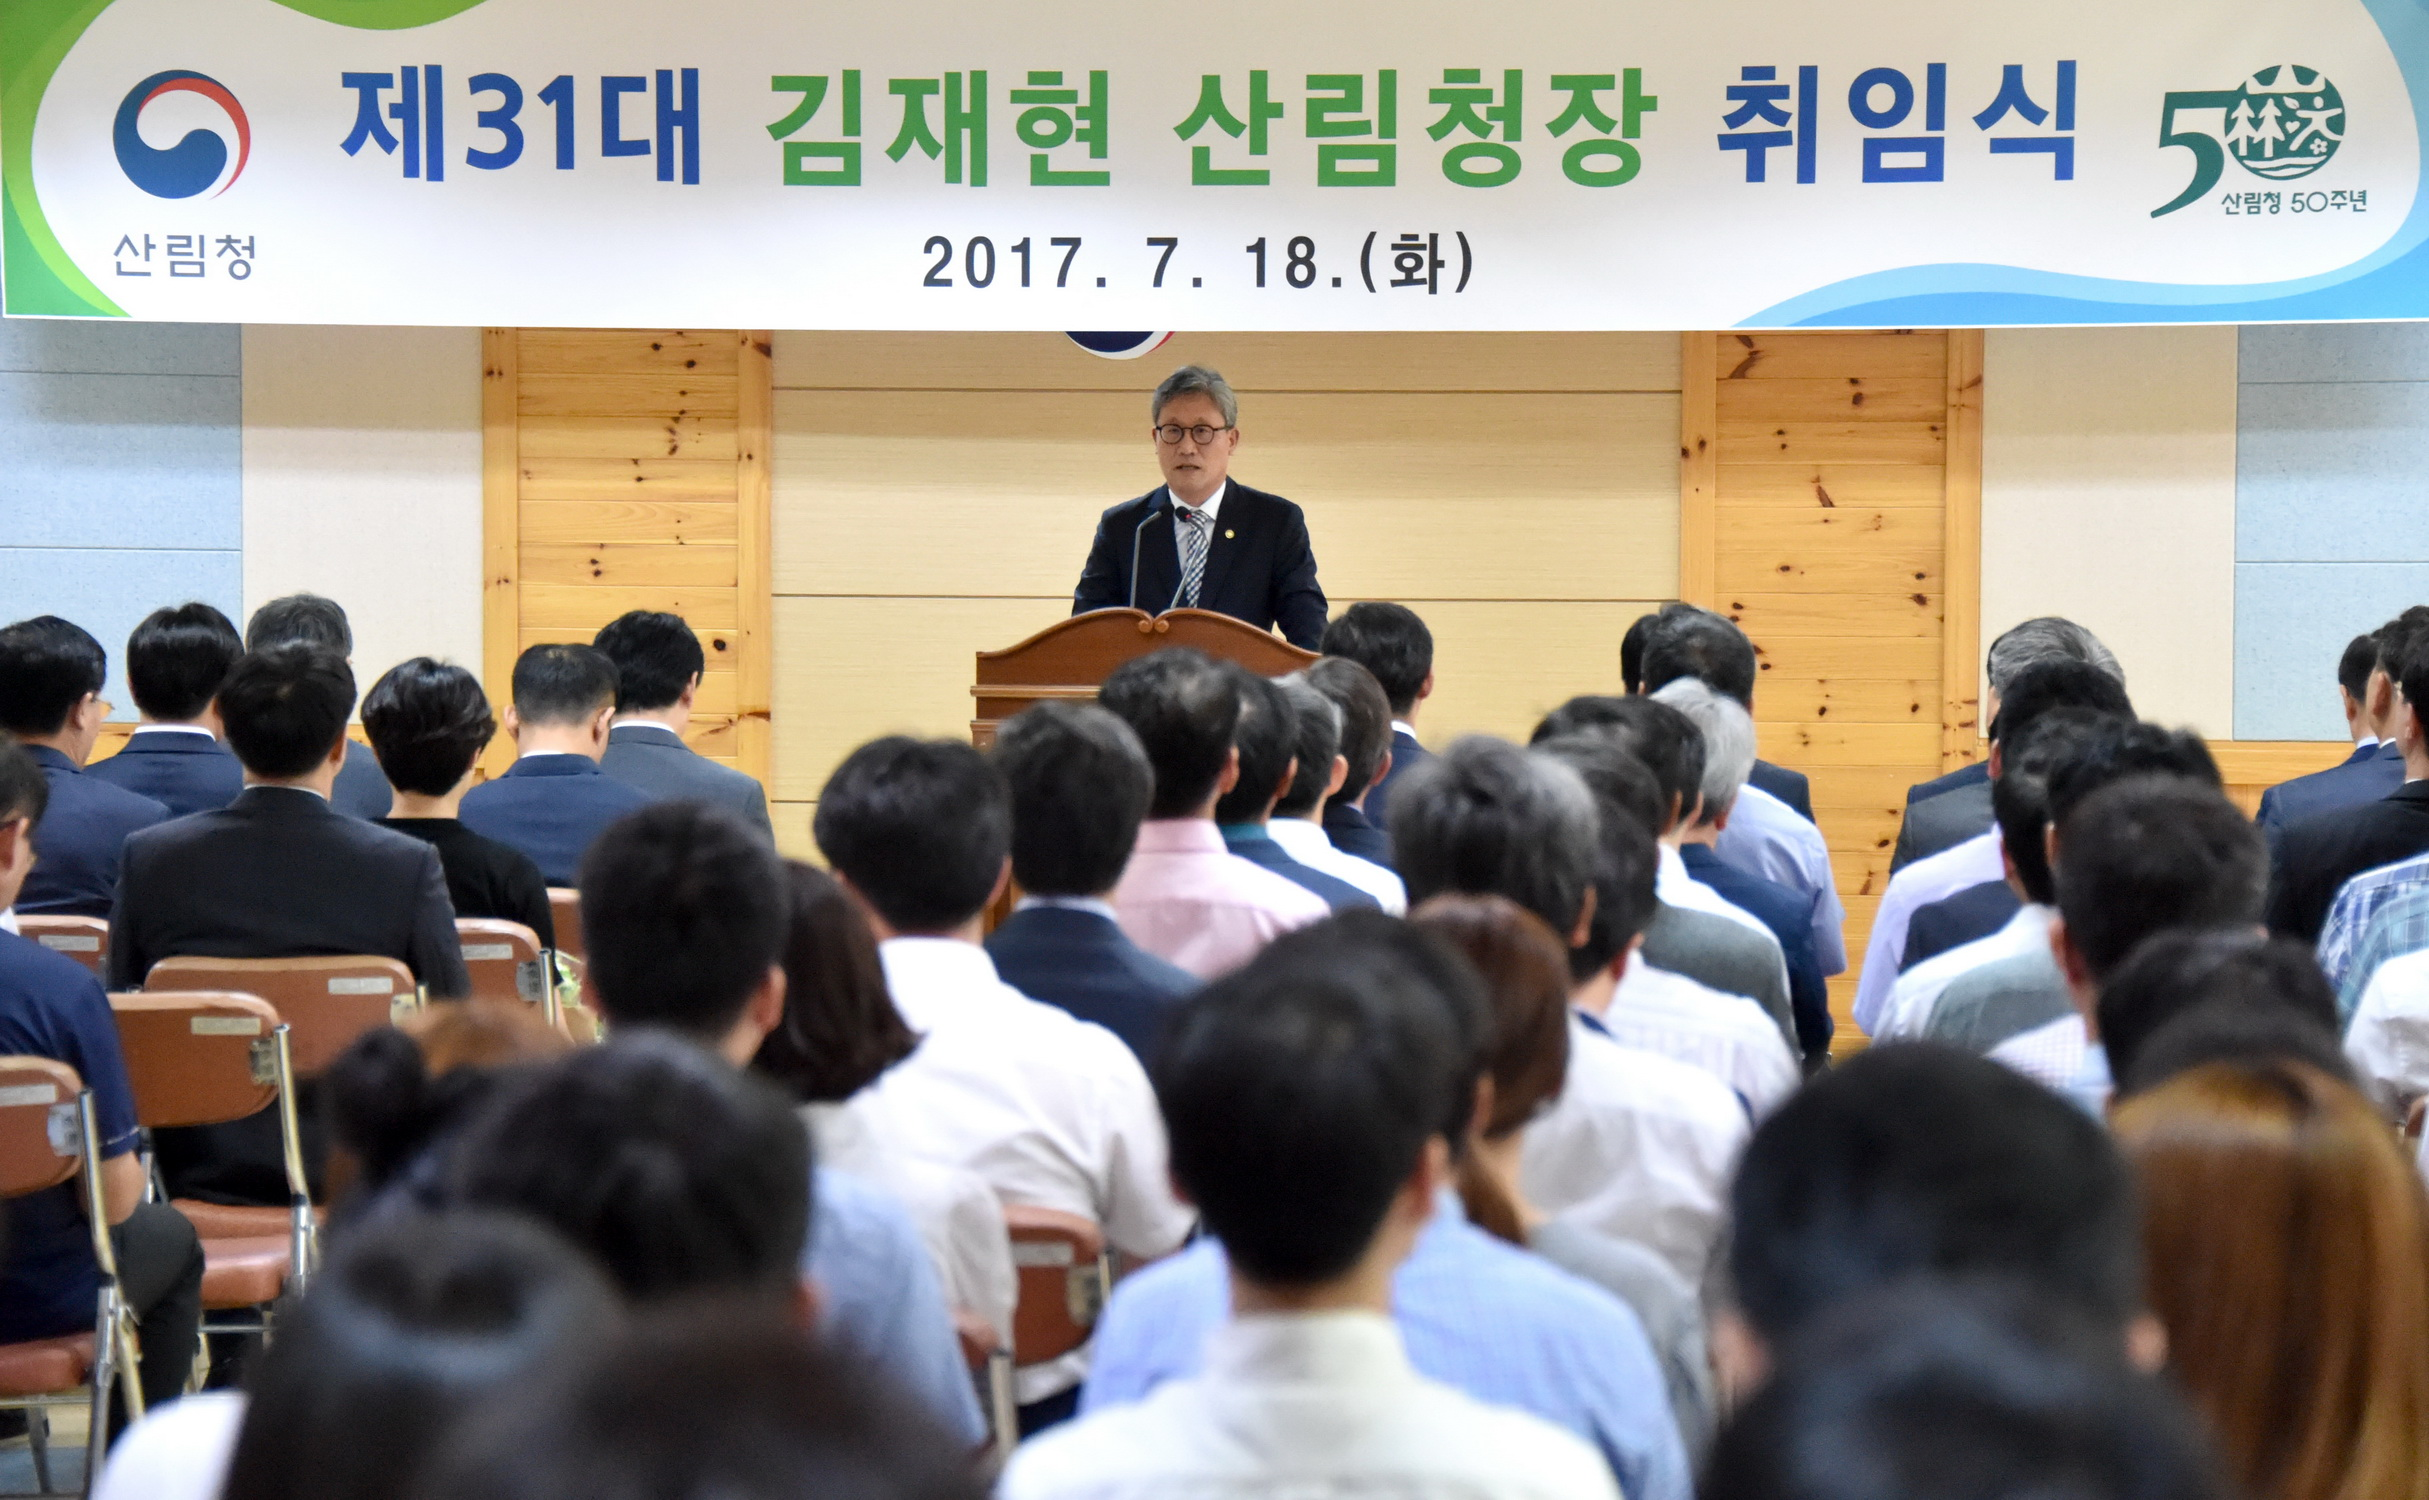 Korea Forest Service Minister Kim Jae-hyun is delivering his inaugural speech.